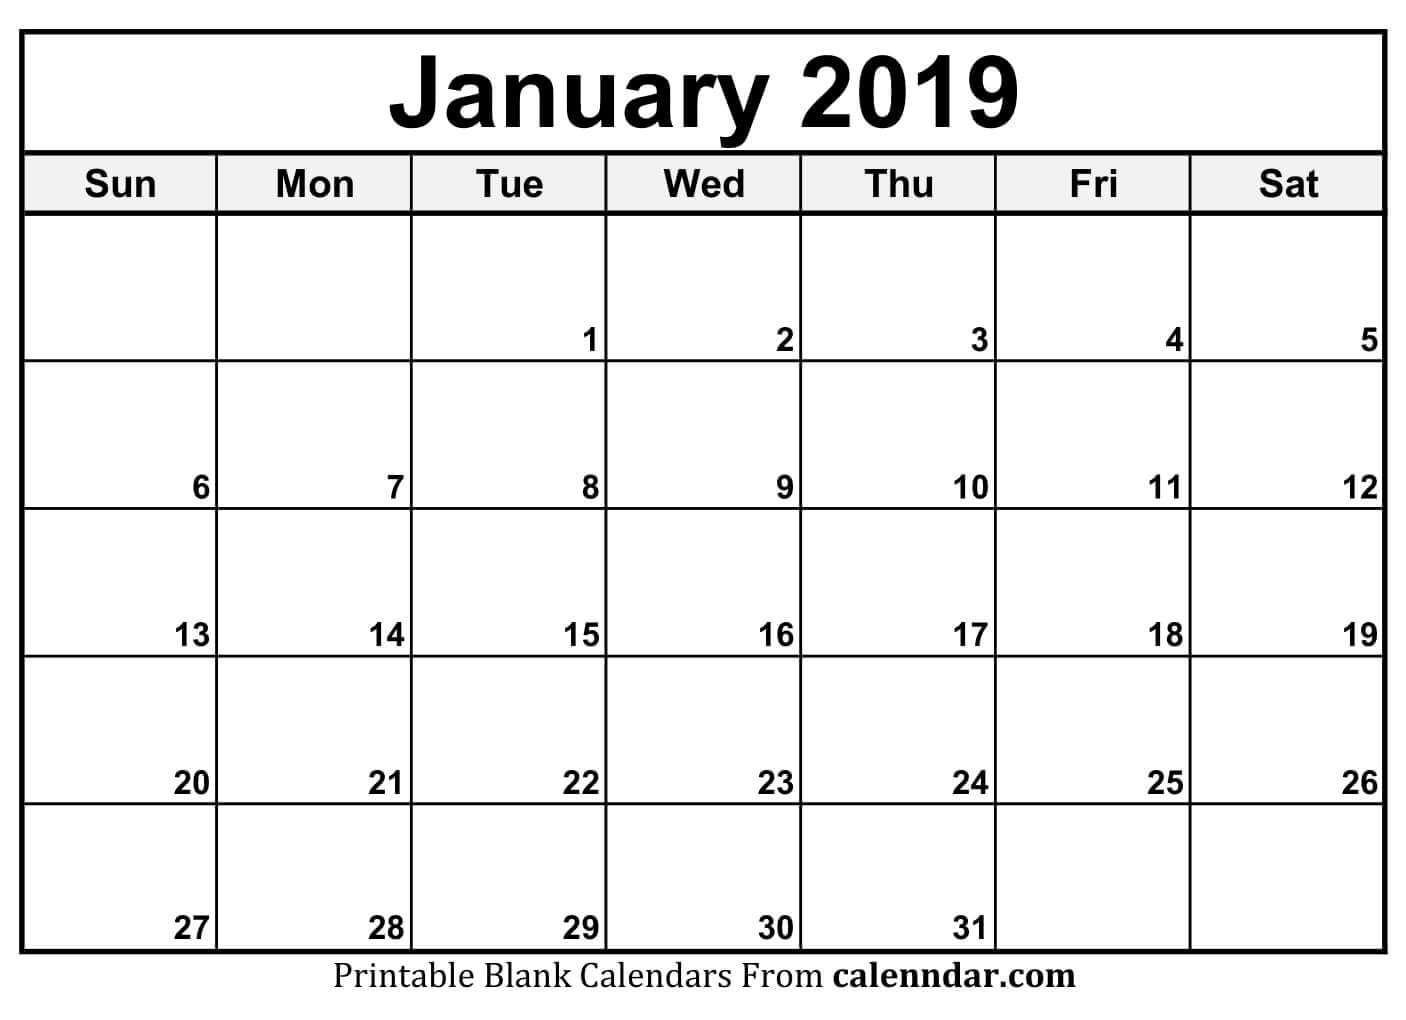 Blank January 2019 Calendar Templates - Calenndar January 2 2019 Calendar